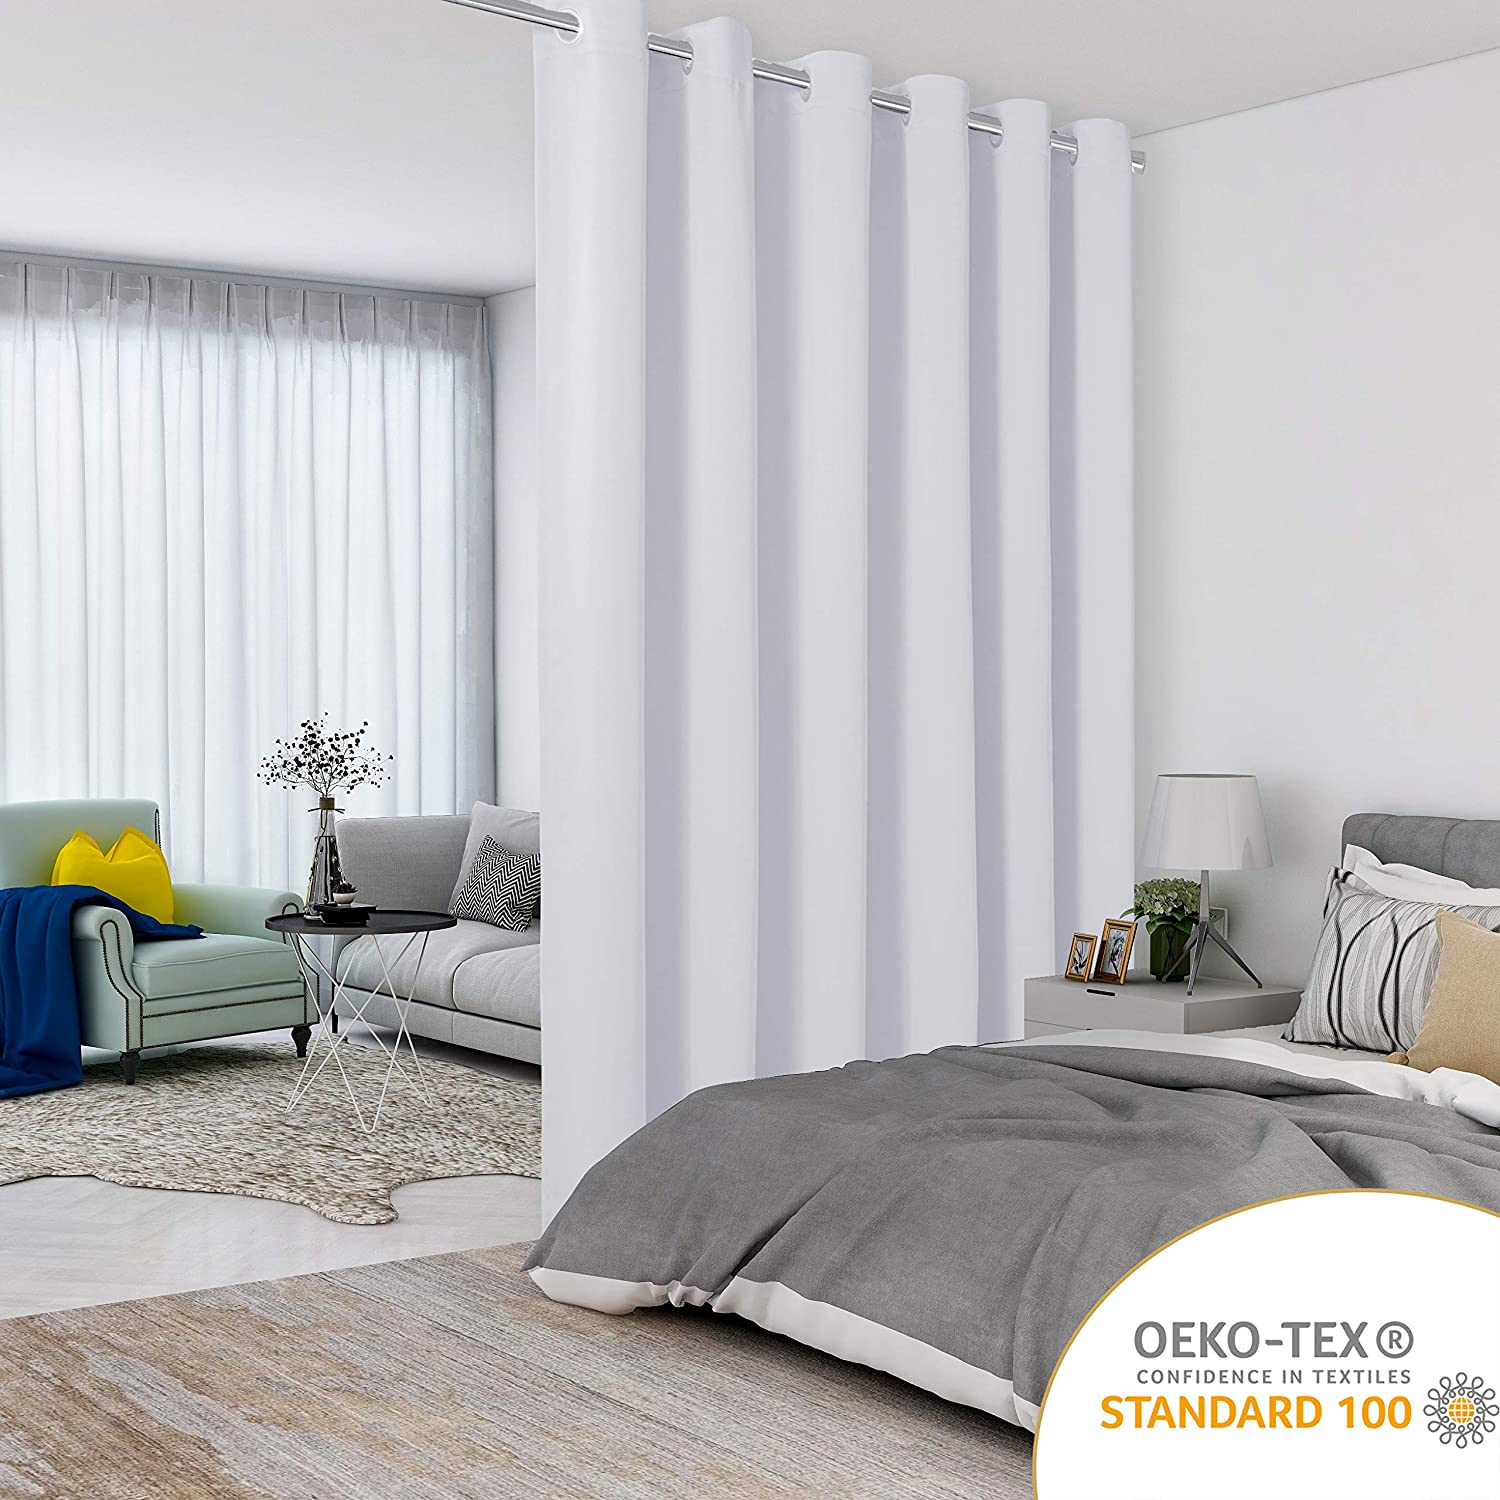 LORDTEX Greyish White Room Divider Curtains - Total Privacy Wall Room Divider Screens Sound Proof Wide Blackout Curtain for Living Room Bedroom Patio Sliding Door, 1 Panel, 15ft Wide x 8ft Tall